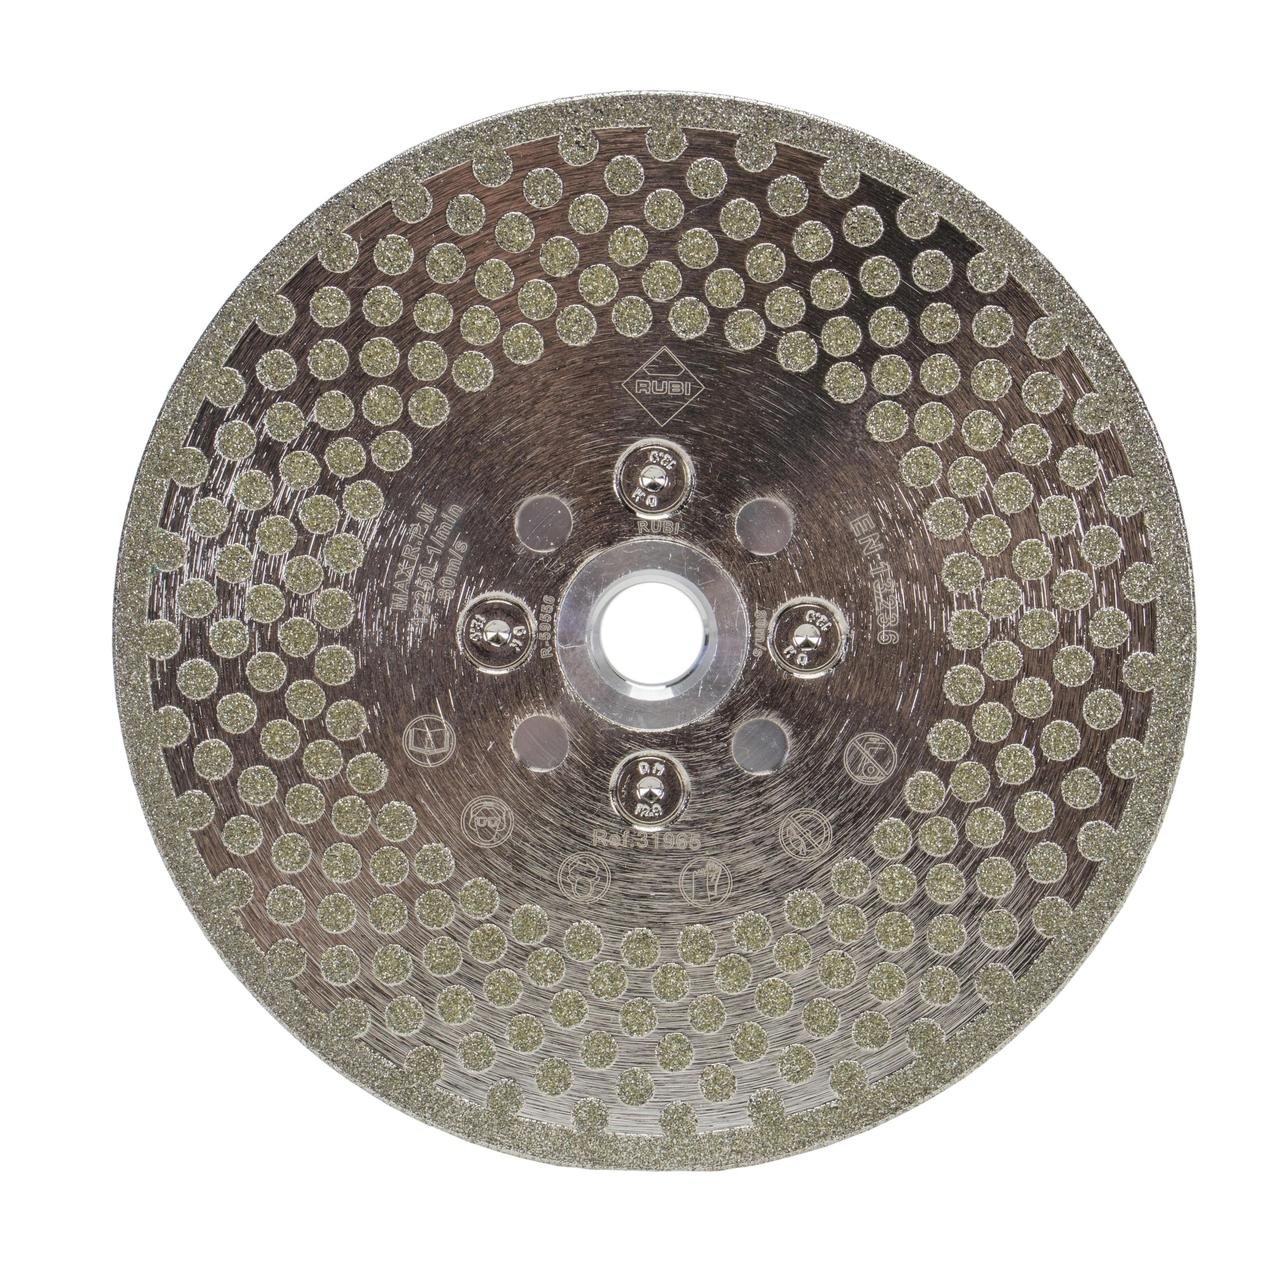 Diamond blades for cutting and grinding